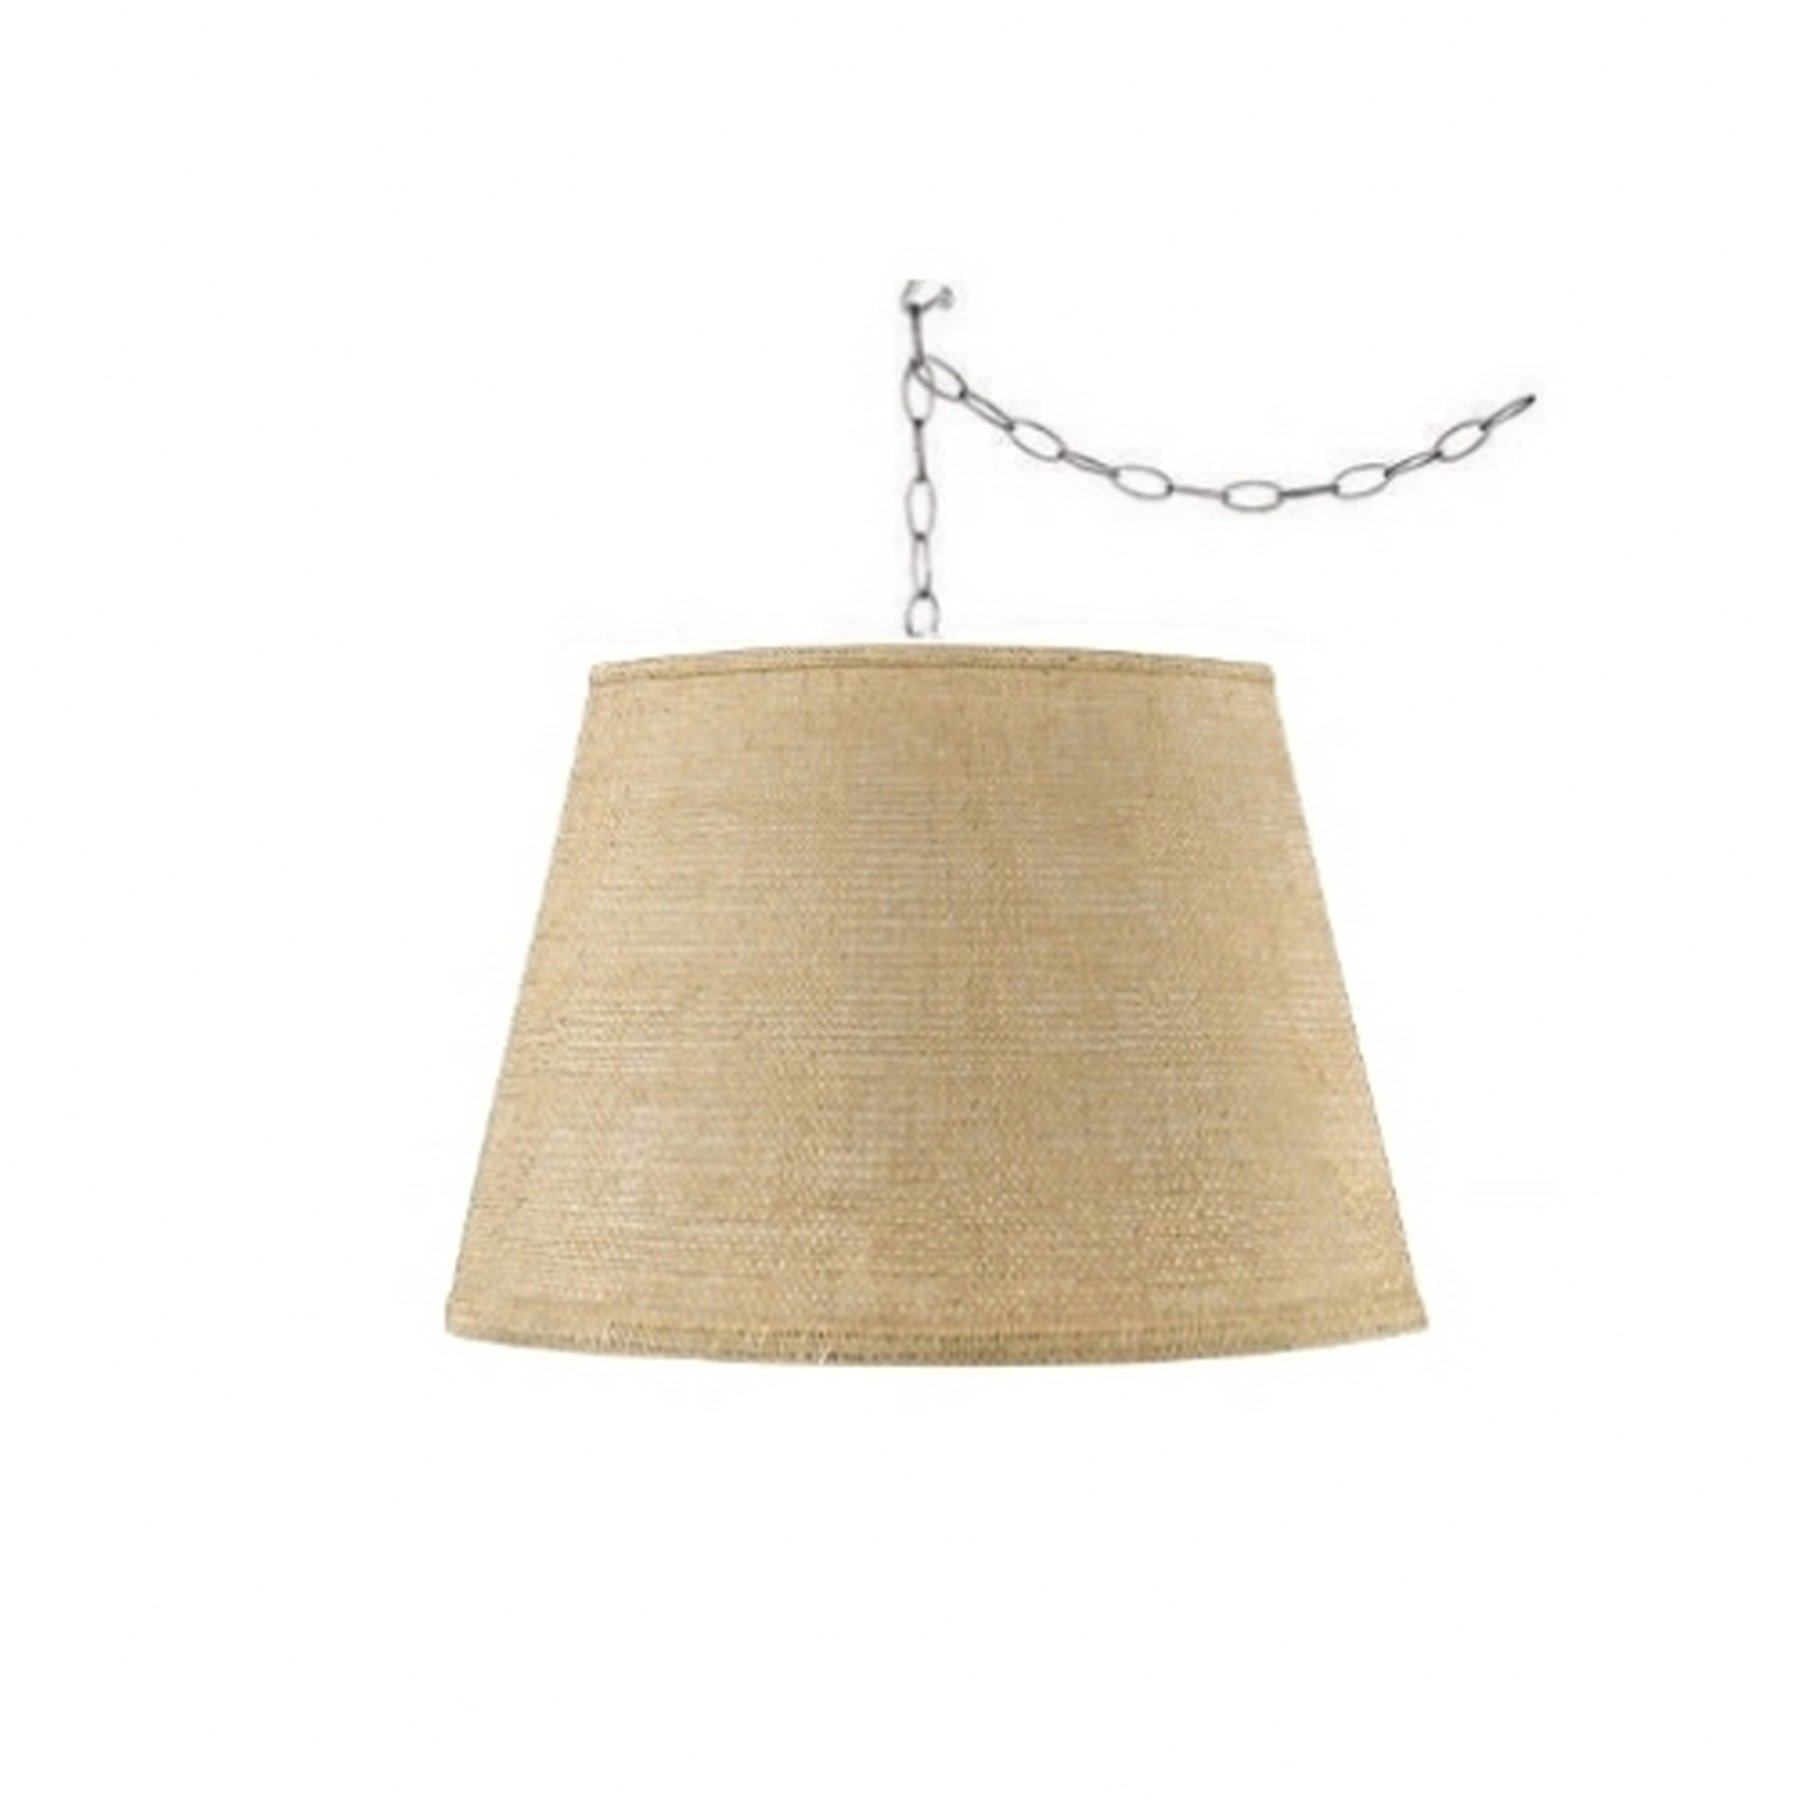 Upgradelights Burlap Swag Lamp Hanging Lighting Fixture Portable Swag Lamp Kit Natural 13x16x11